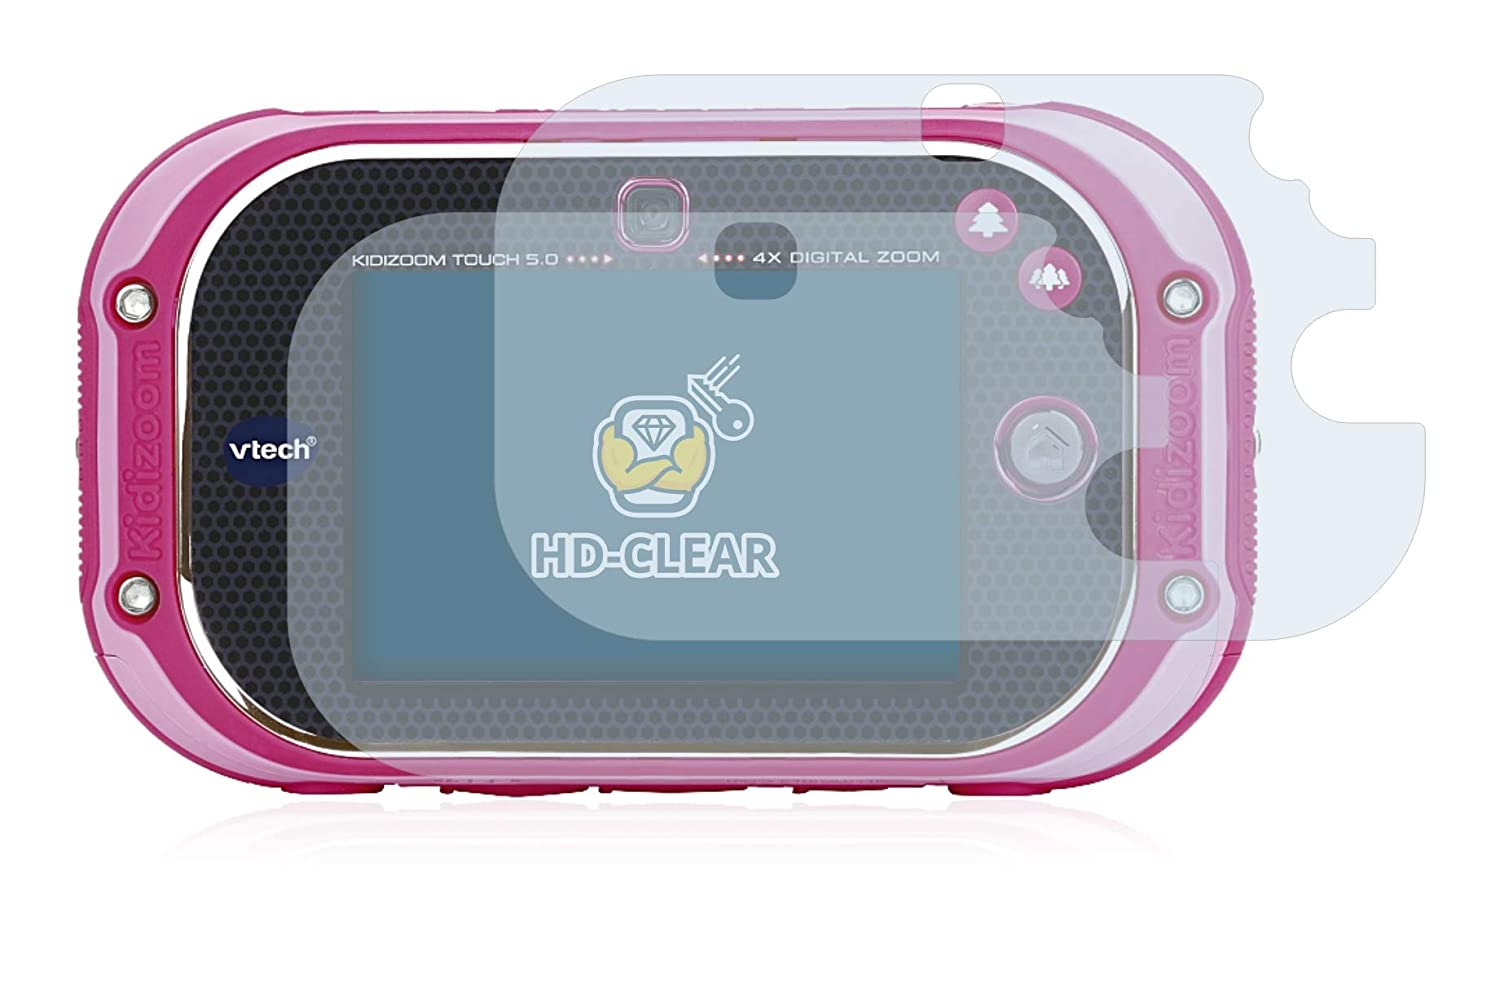 Vtech Kidizoom Touch 5